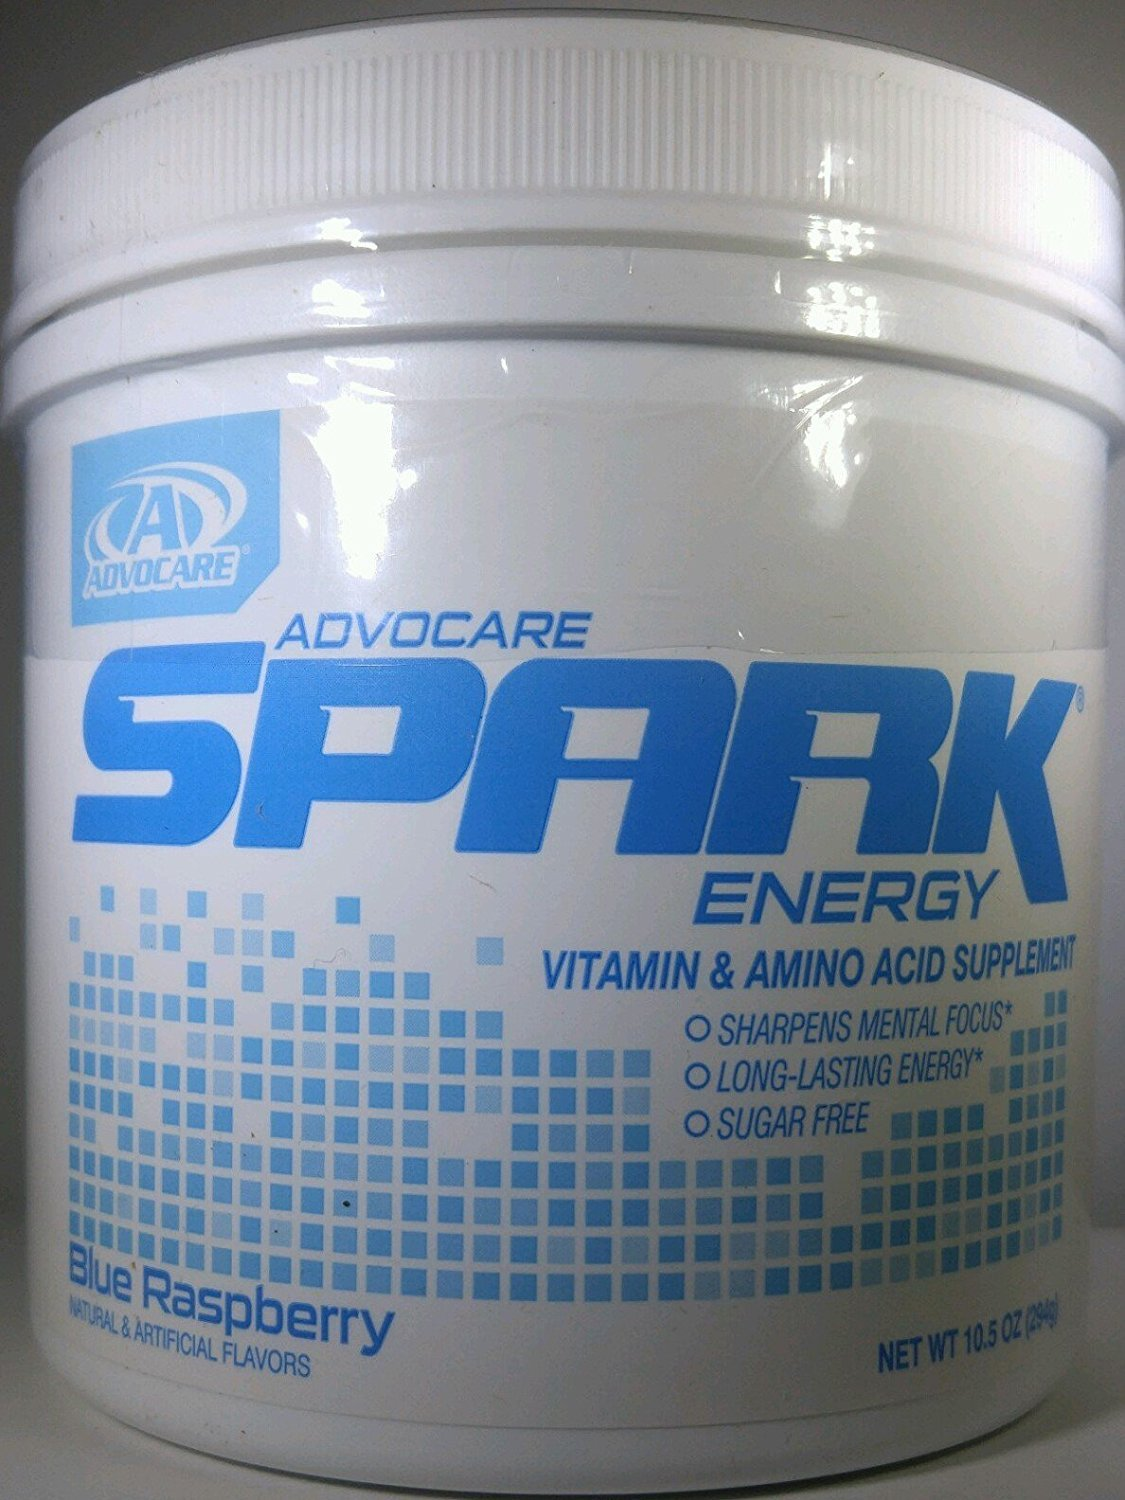 Advocare Spark Blue Raspberry Energy Formula (42 Serving) by AdvoCare